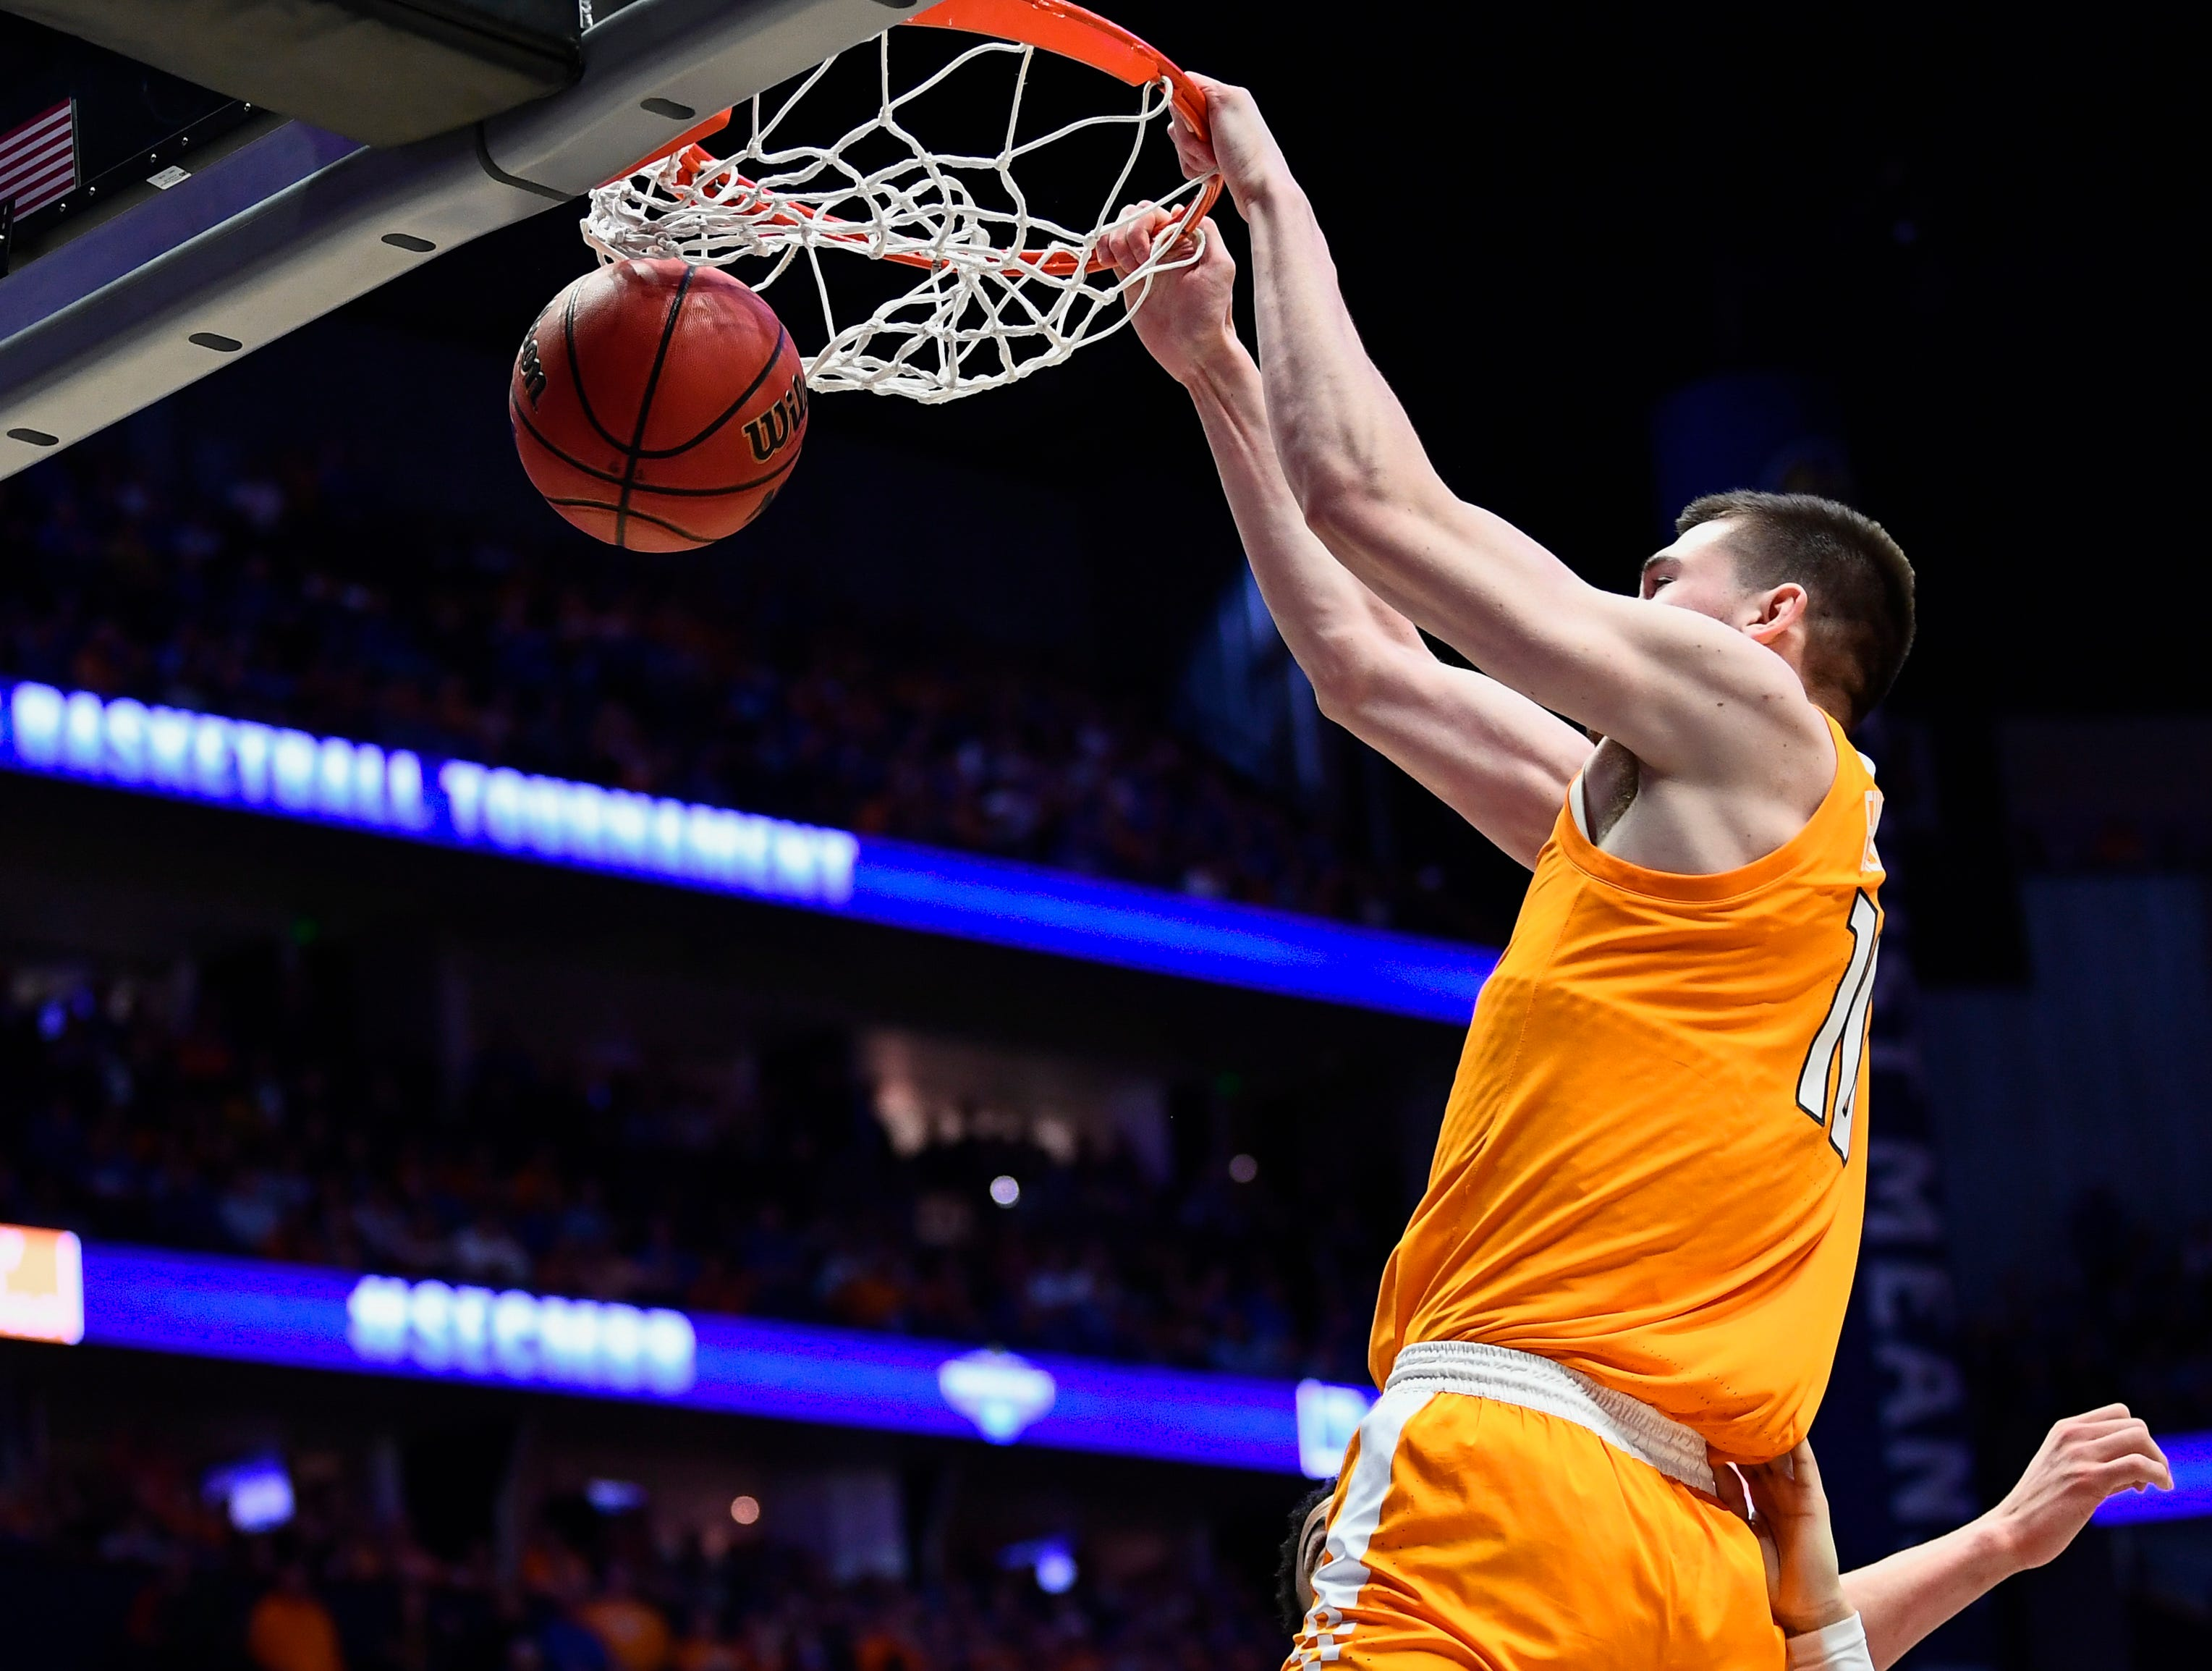 Tennessee forward John Fulkerson (10) dunks against Kentucky during the second half of the SEC Men's Basketball Tournament semifinal game at Bridgestone Arena in Nashville, Tenn., Saturday, March 16, 2019.